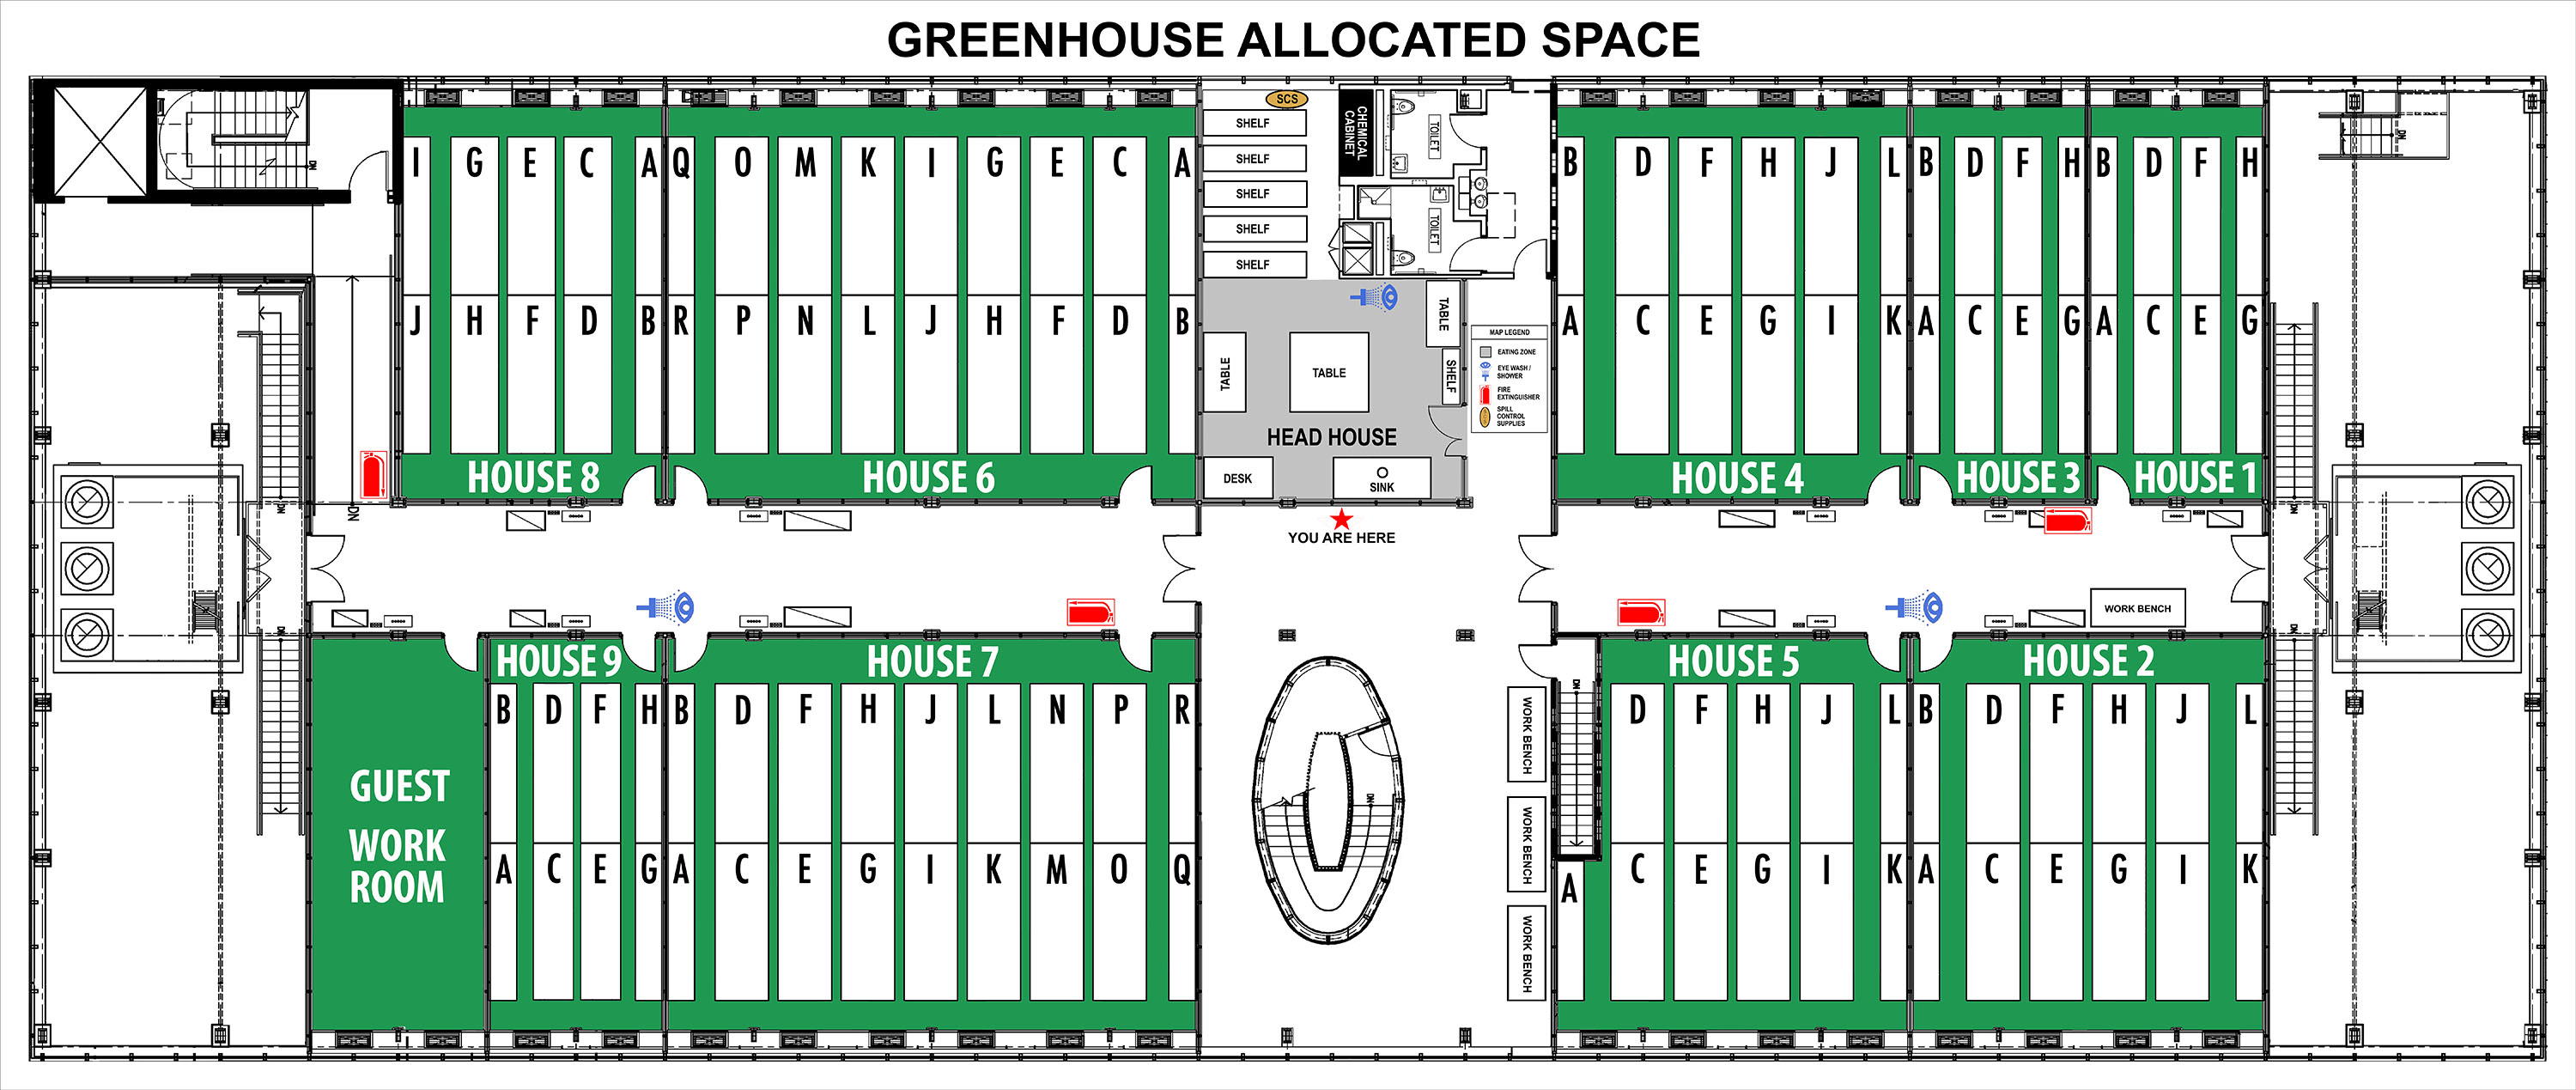 23 artistic greenhouse layout plans house plans 27396 for Greenhouse floor plan